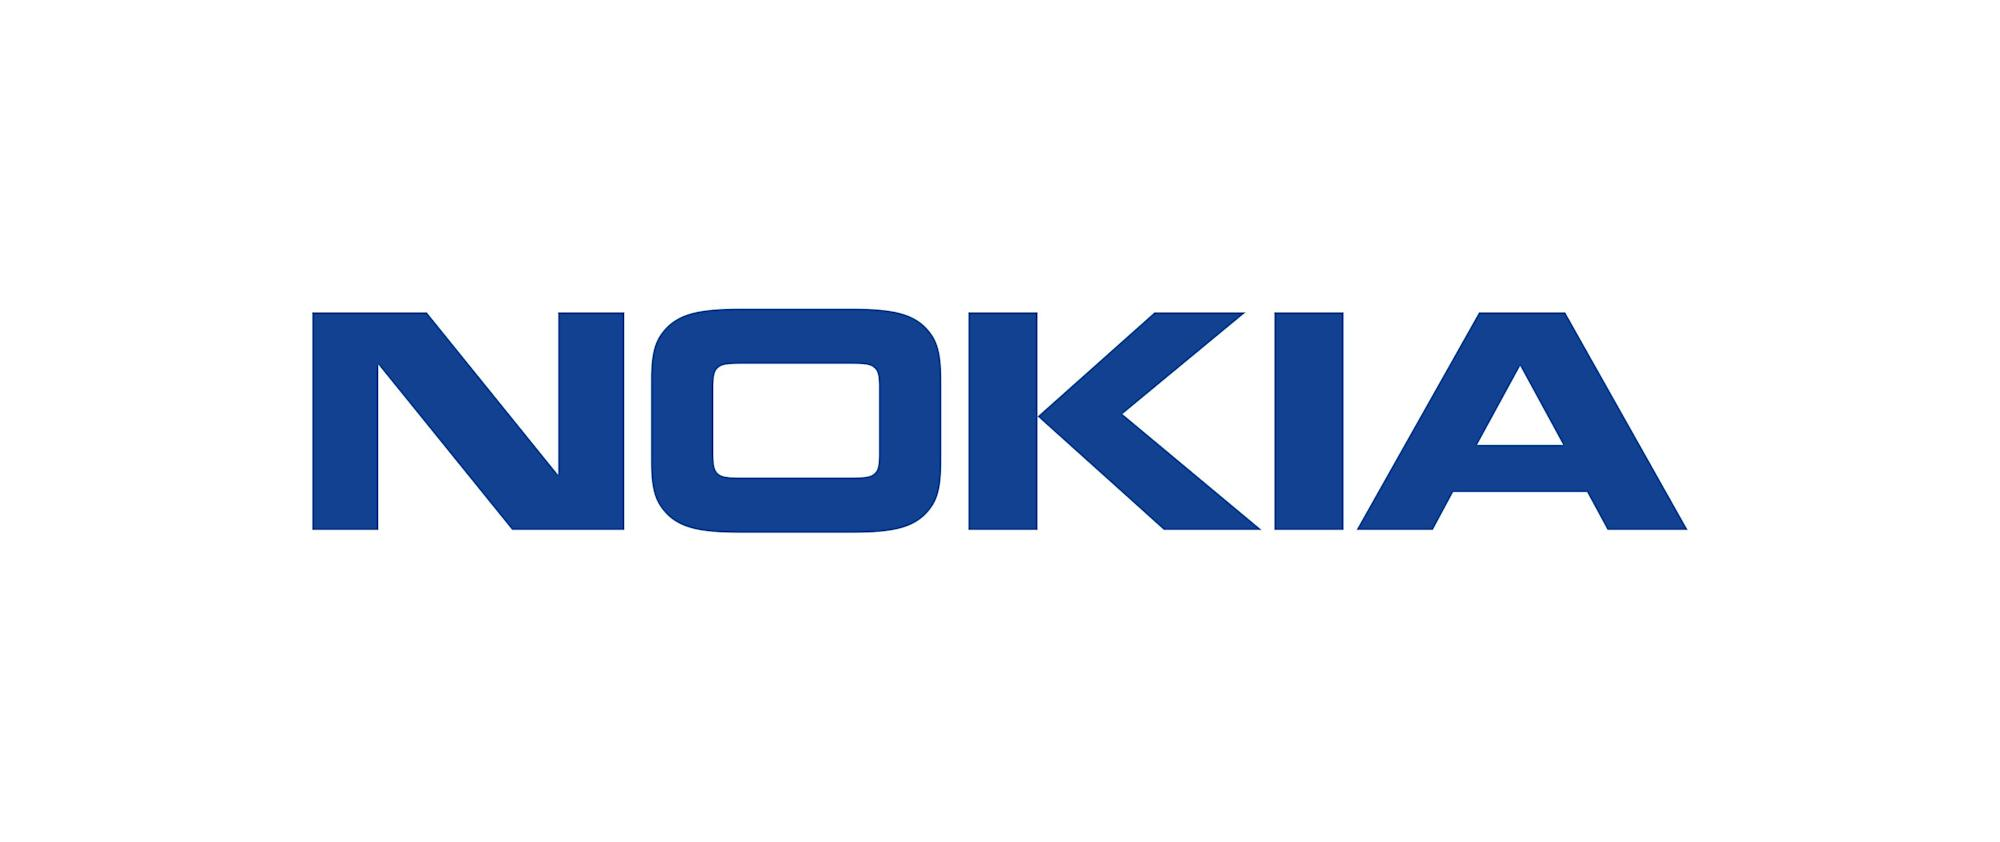 Nokia selected by Globe Telecom to rollout 5G in the Philippines in three-year deal